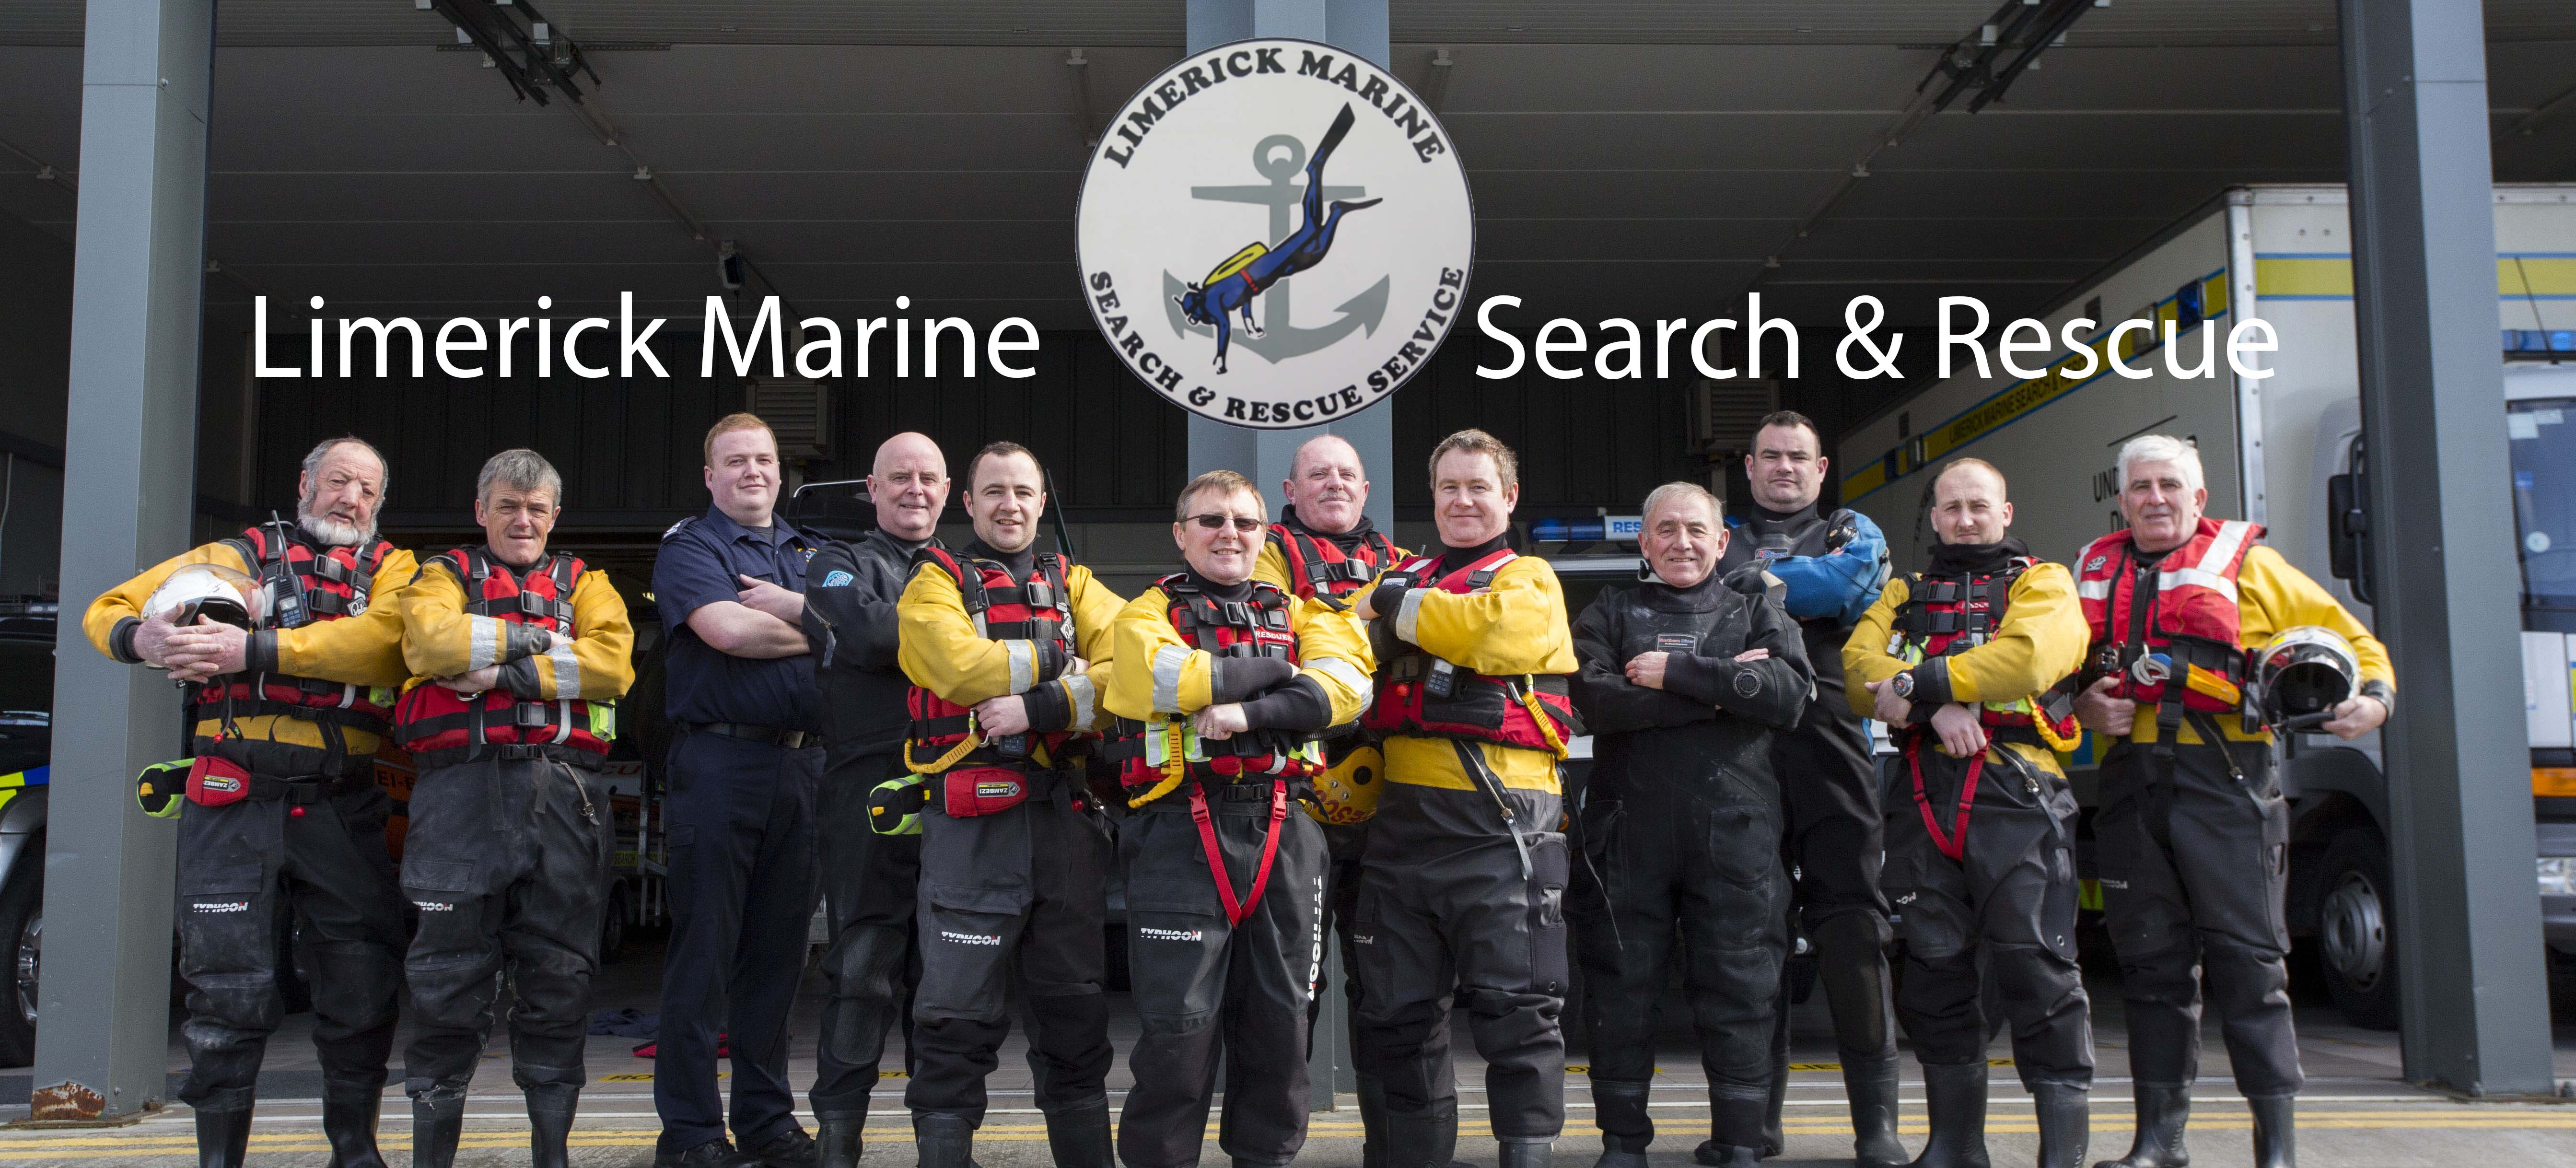 Limerick Marine Search and Rescue ask Limerick companies to support them on their 30th Anniversary